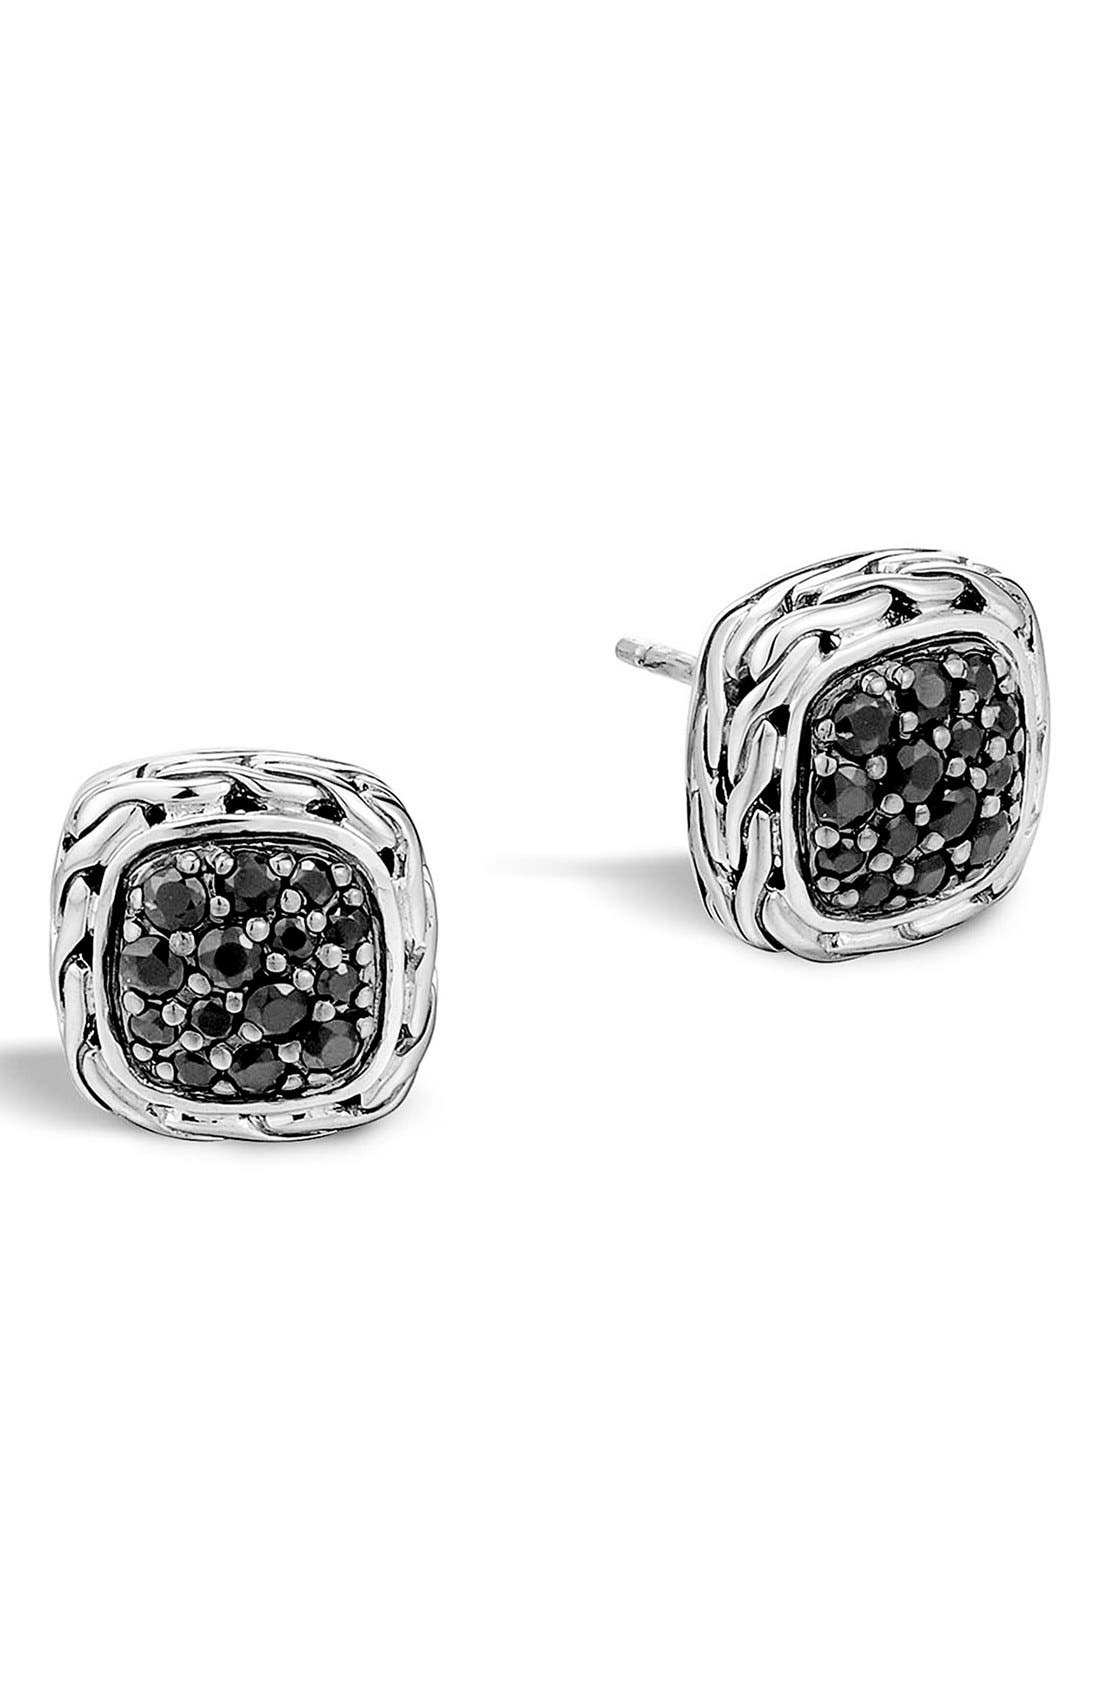 JOHN HARDY Classic Chain Small Square Stud Earrings